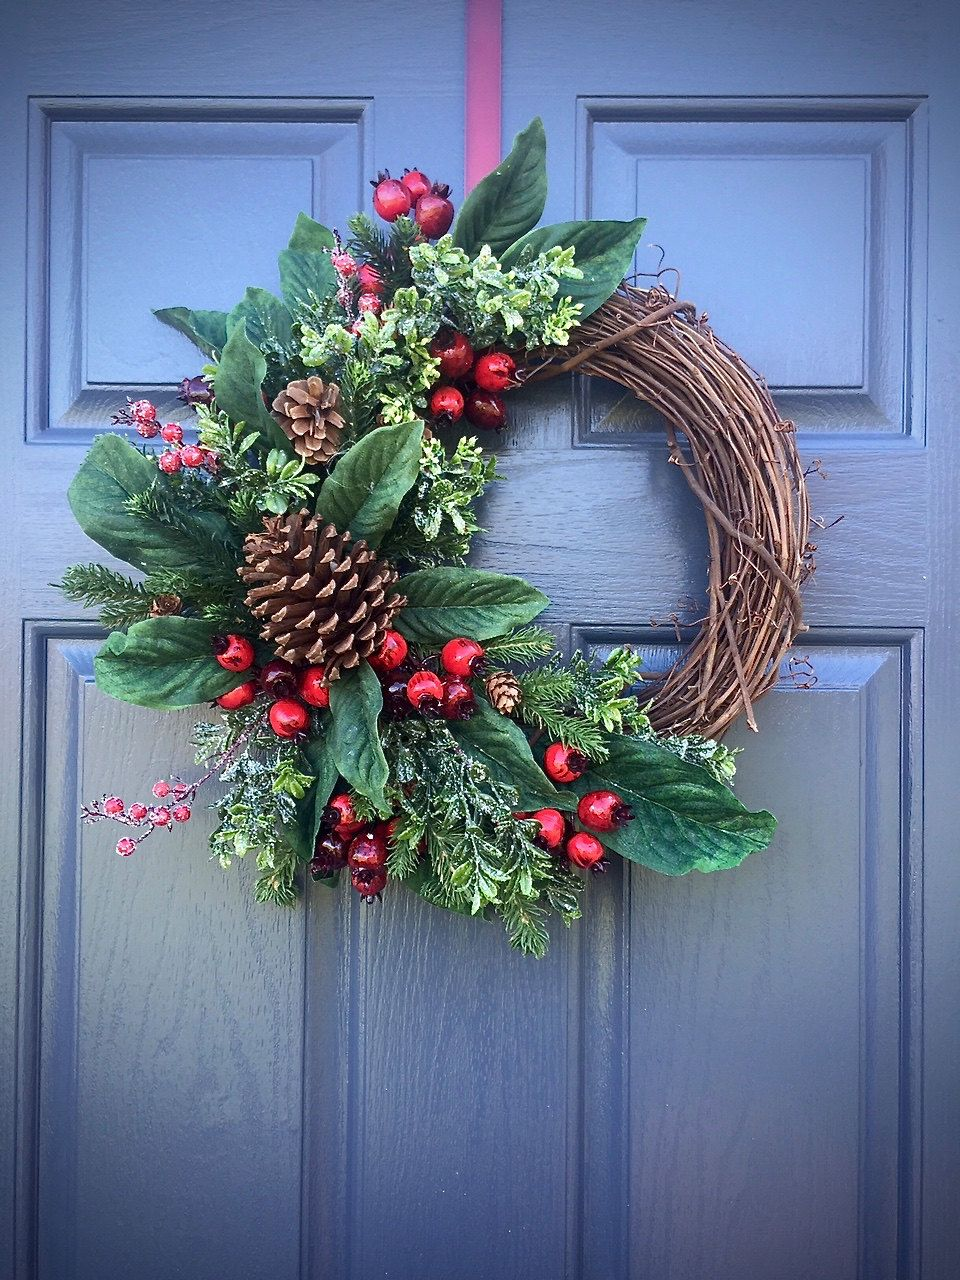 Pinecone wreaths winter door wreaths green red winter for 3 wreath door decoration